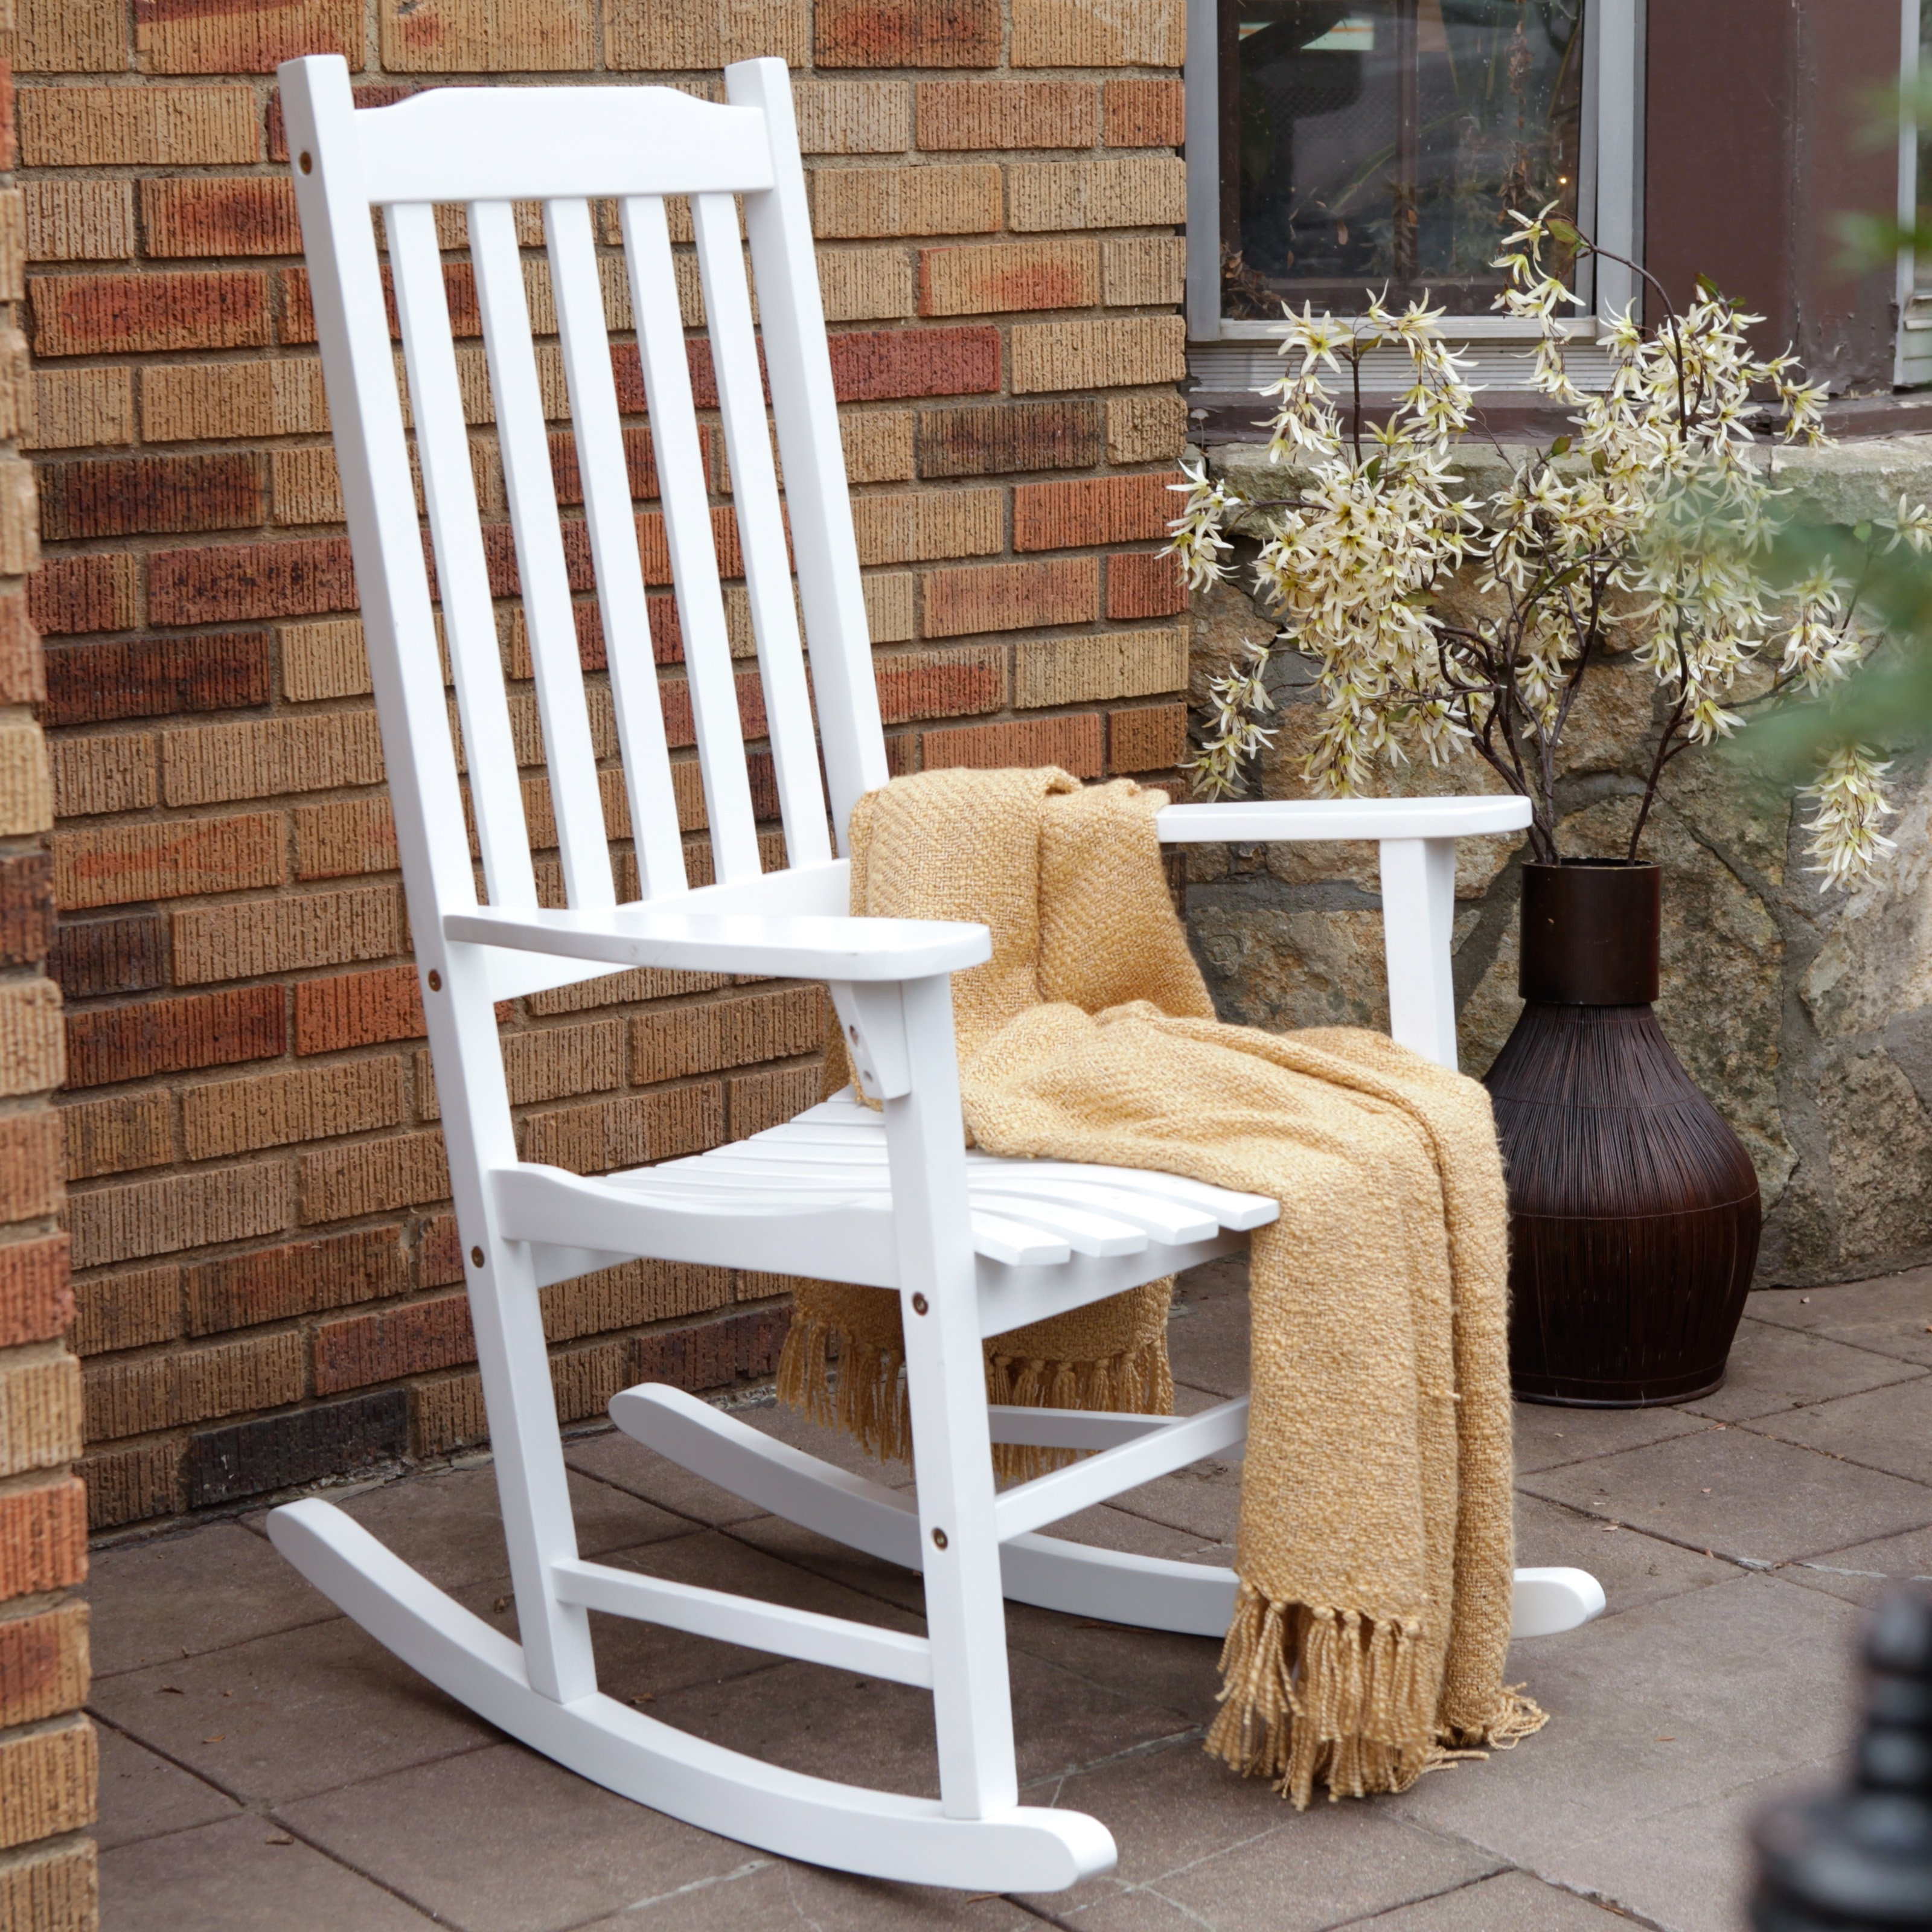 Patio Wooden Rocking Chairs With Regard To Recent Garden & Patio Furniture : Outdoor Wooden Rocking Chairs New Chairs (View 3 of 15)